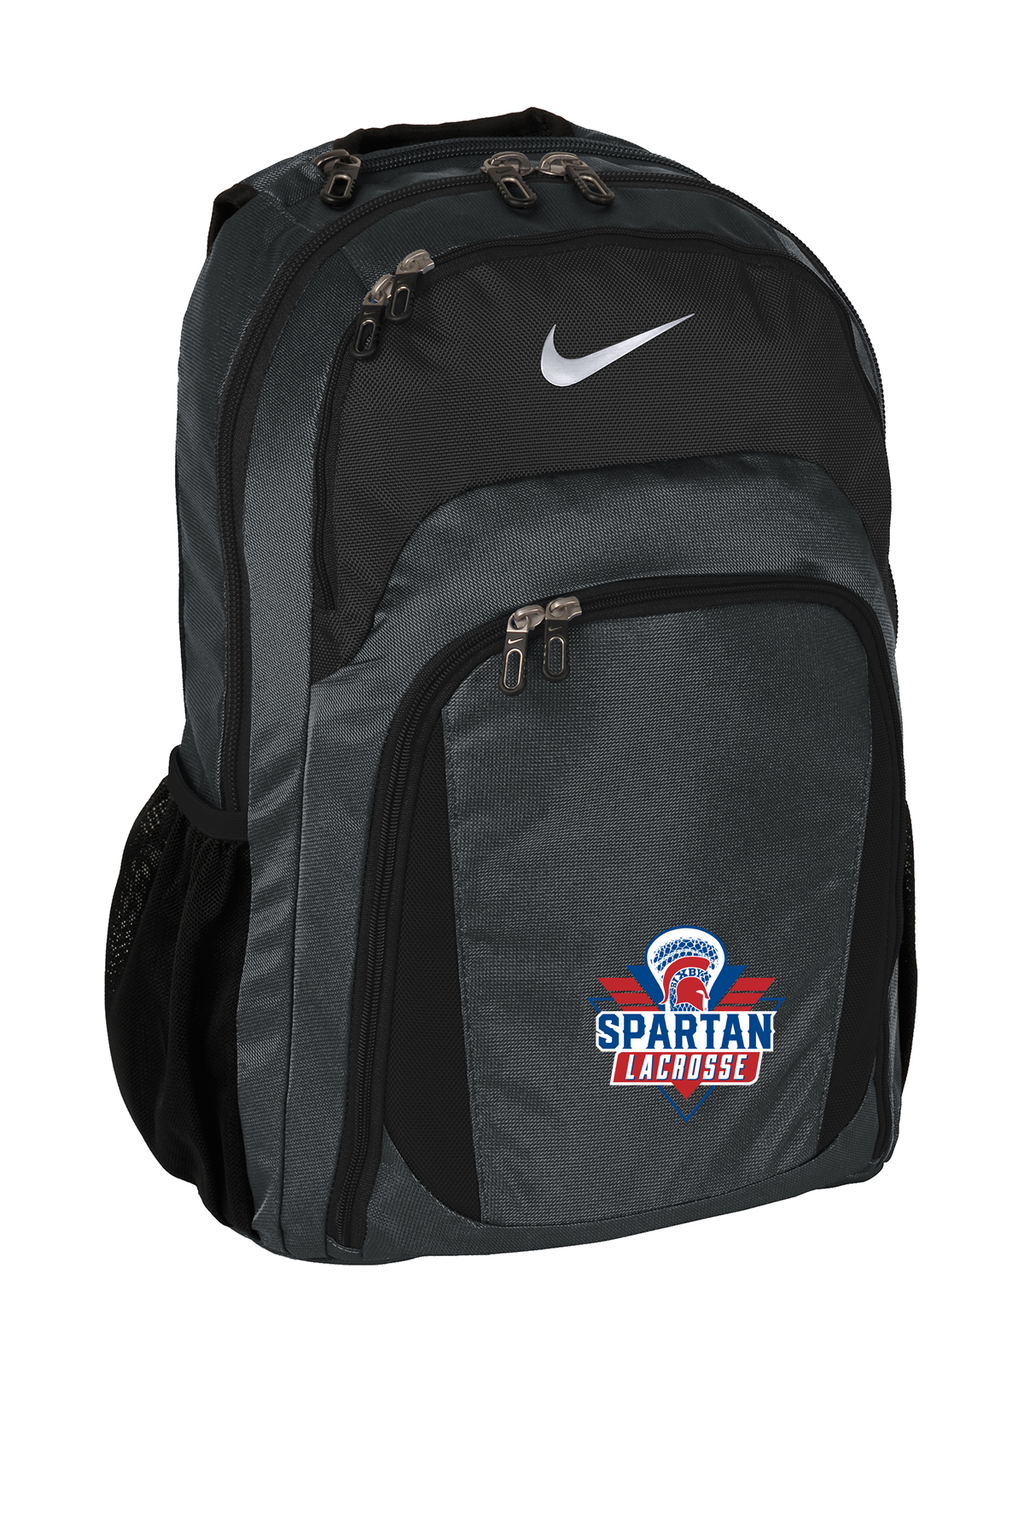 Bixby Youth Lacrosse Nike Backpack